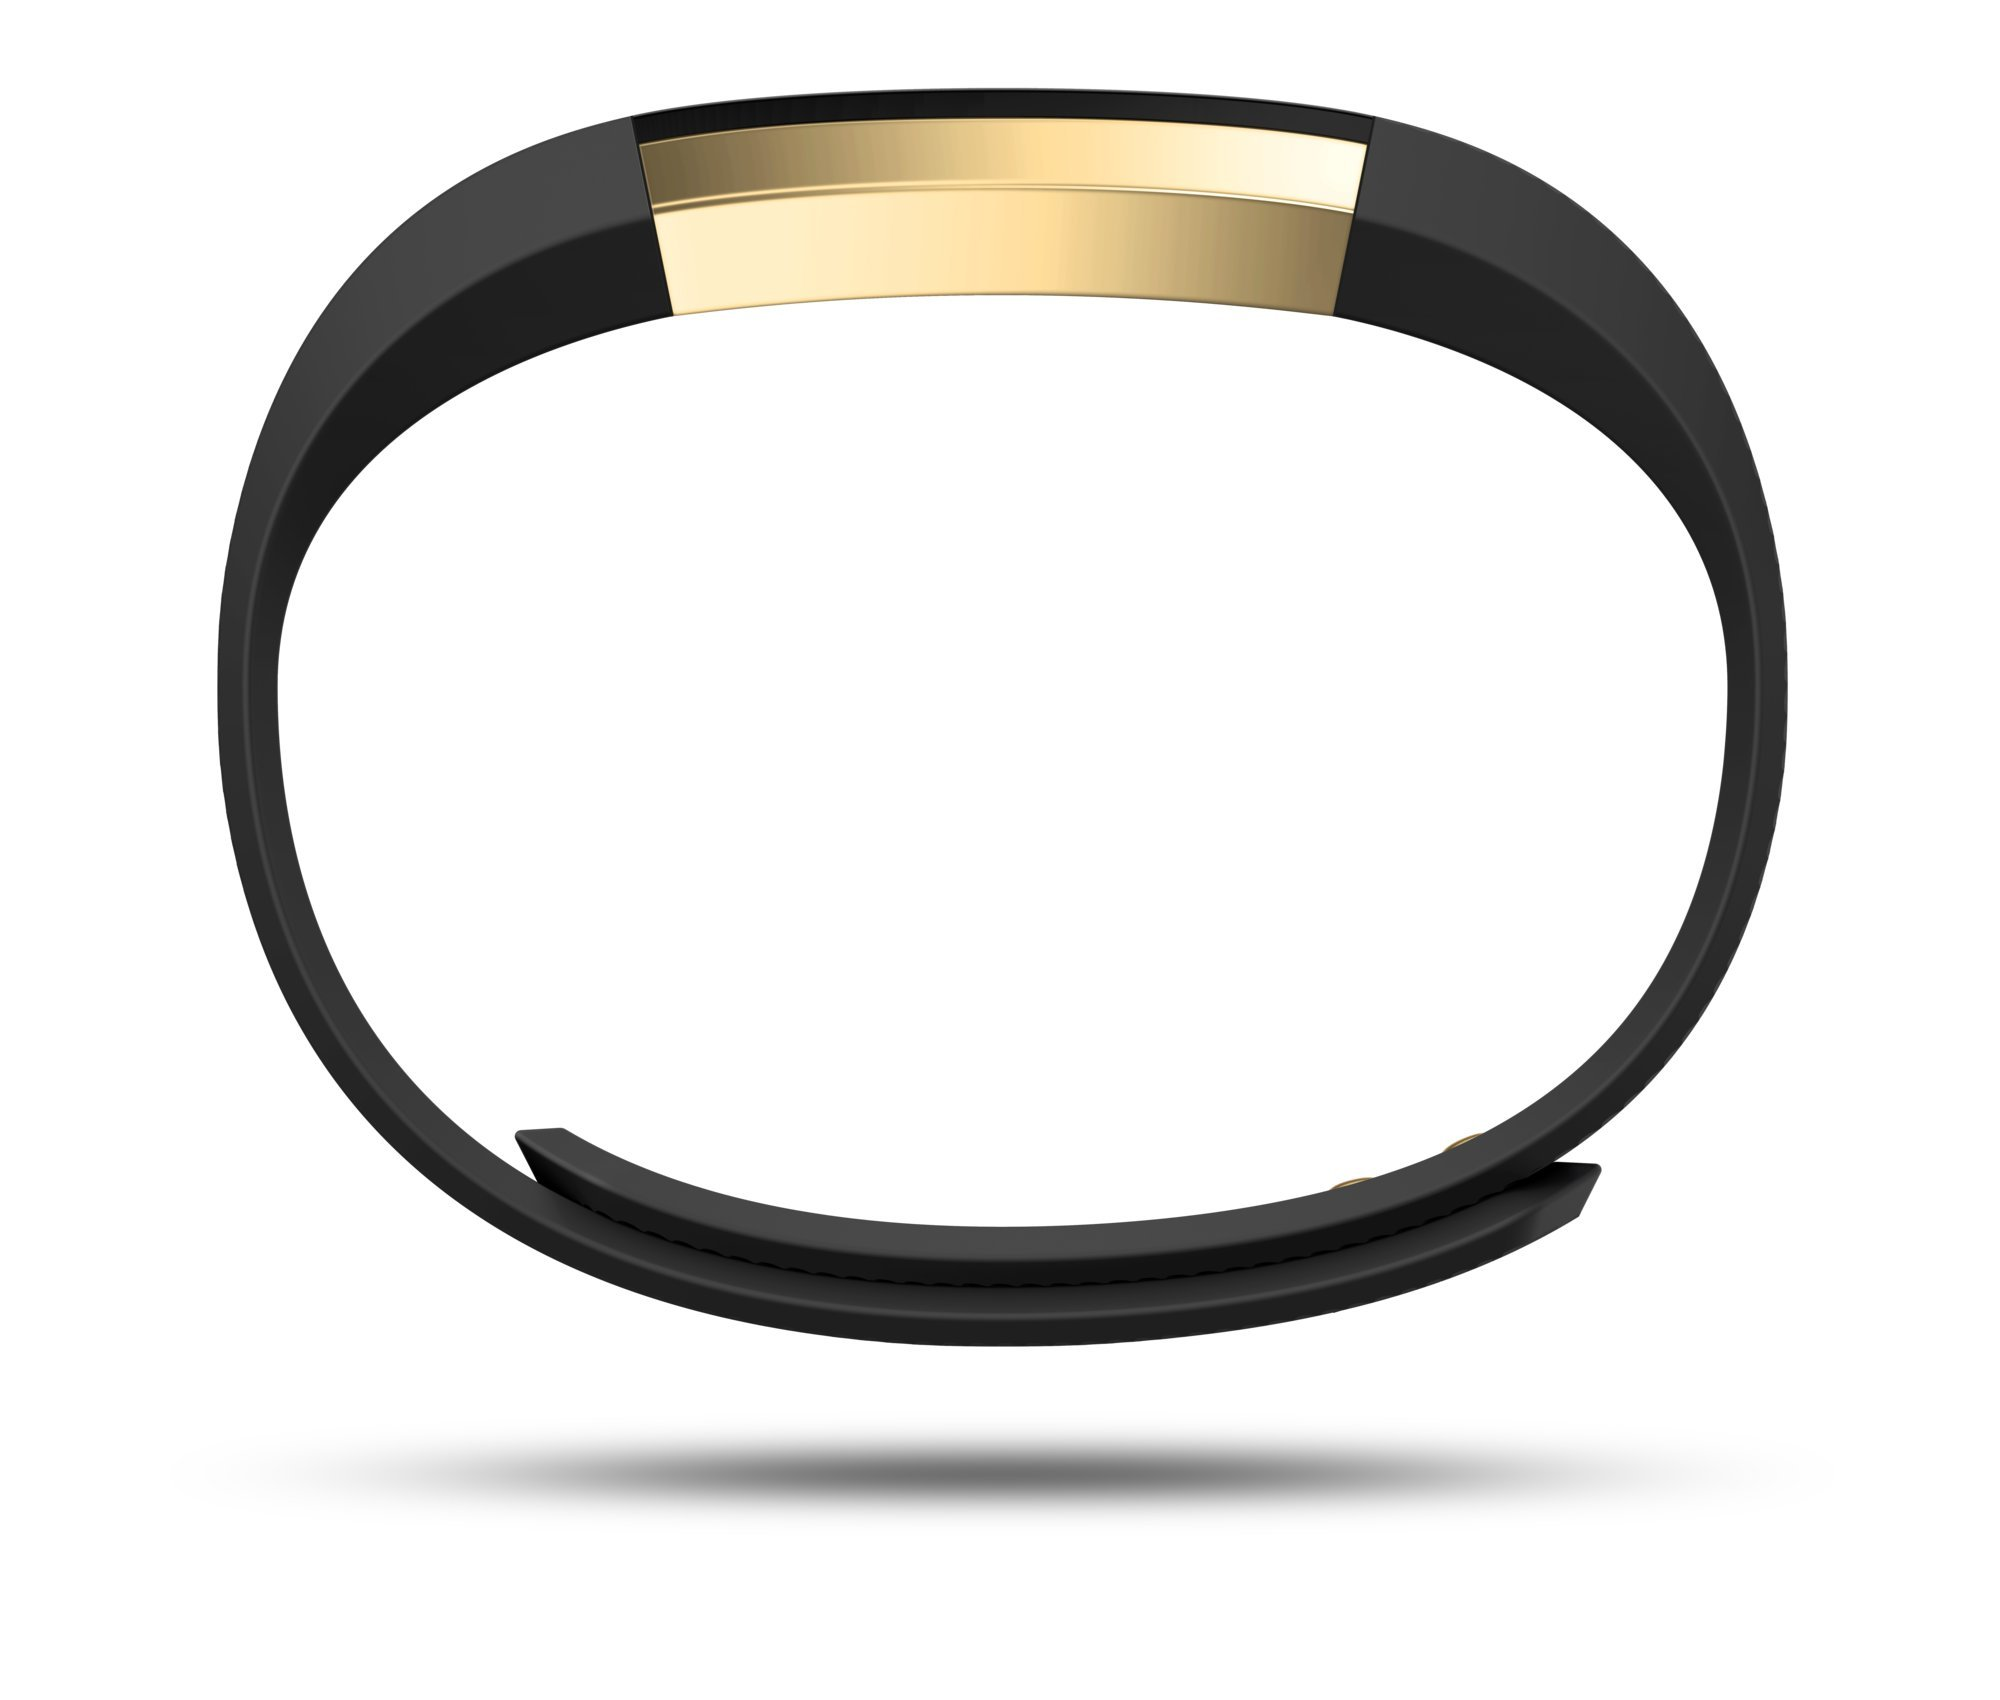 Fitbit Alta Fitness Tracker, Special Edition Gold, Black, Small (US Version) by Fitbit (Image #2)